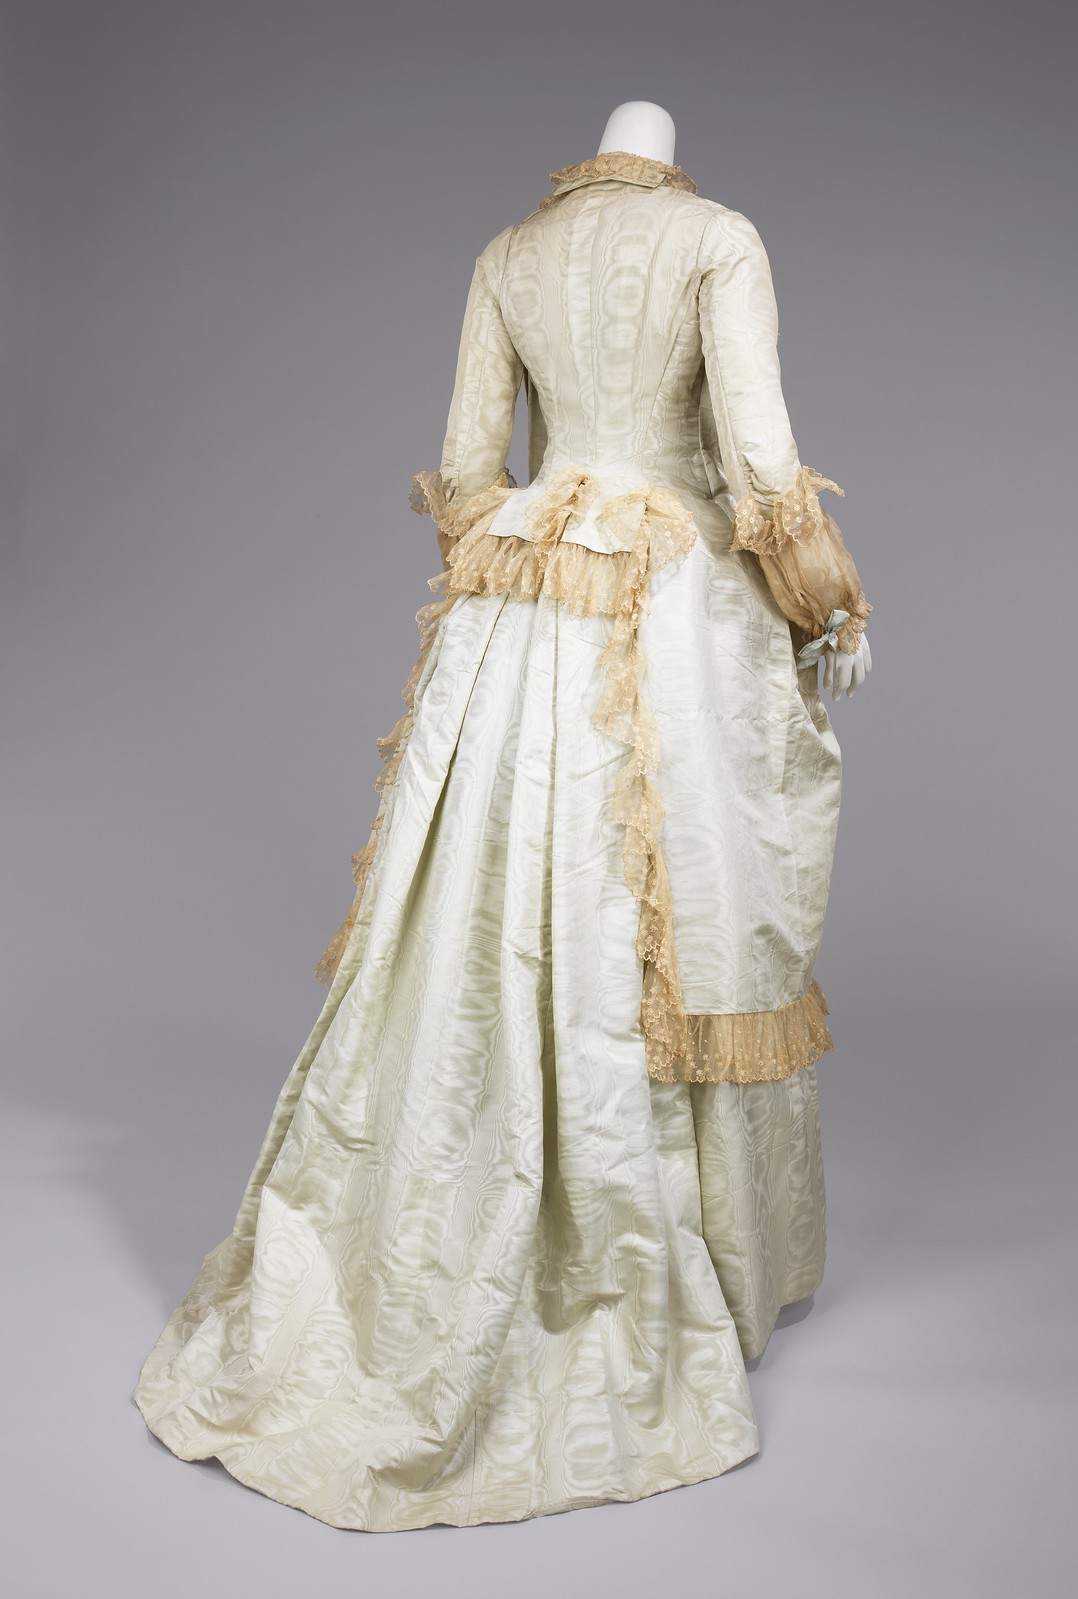 c1878. American. Silk, cotton. metmuseum